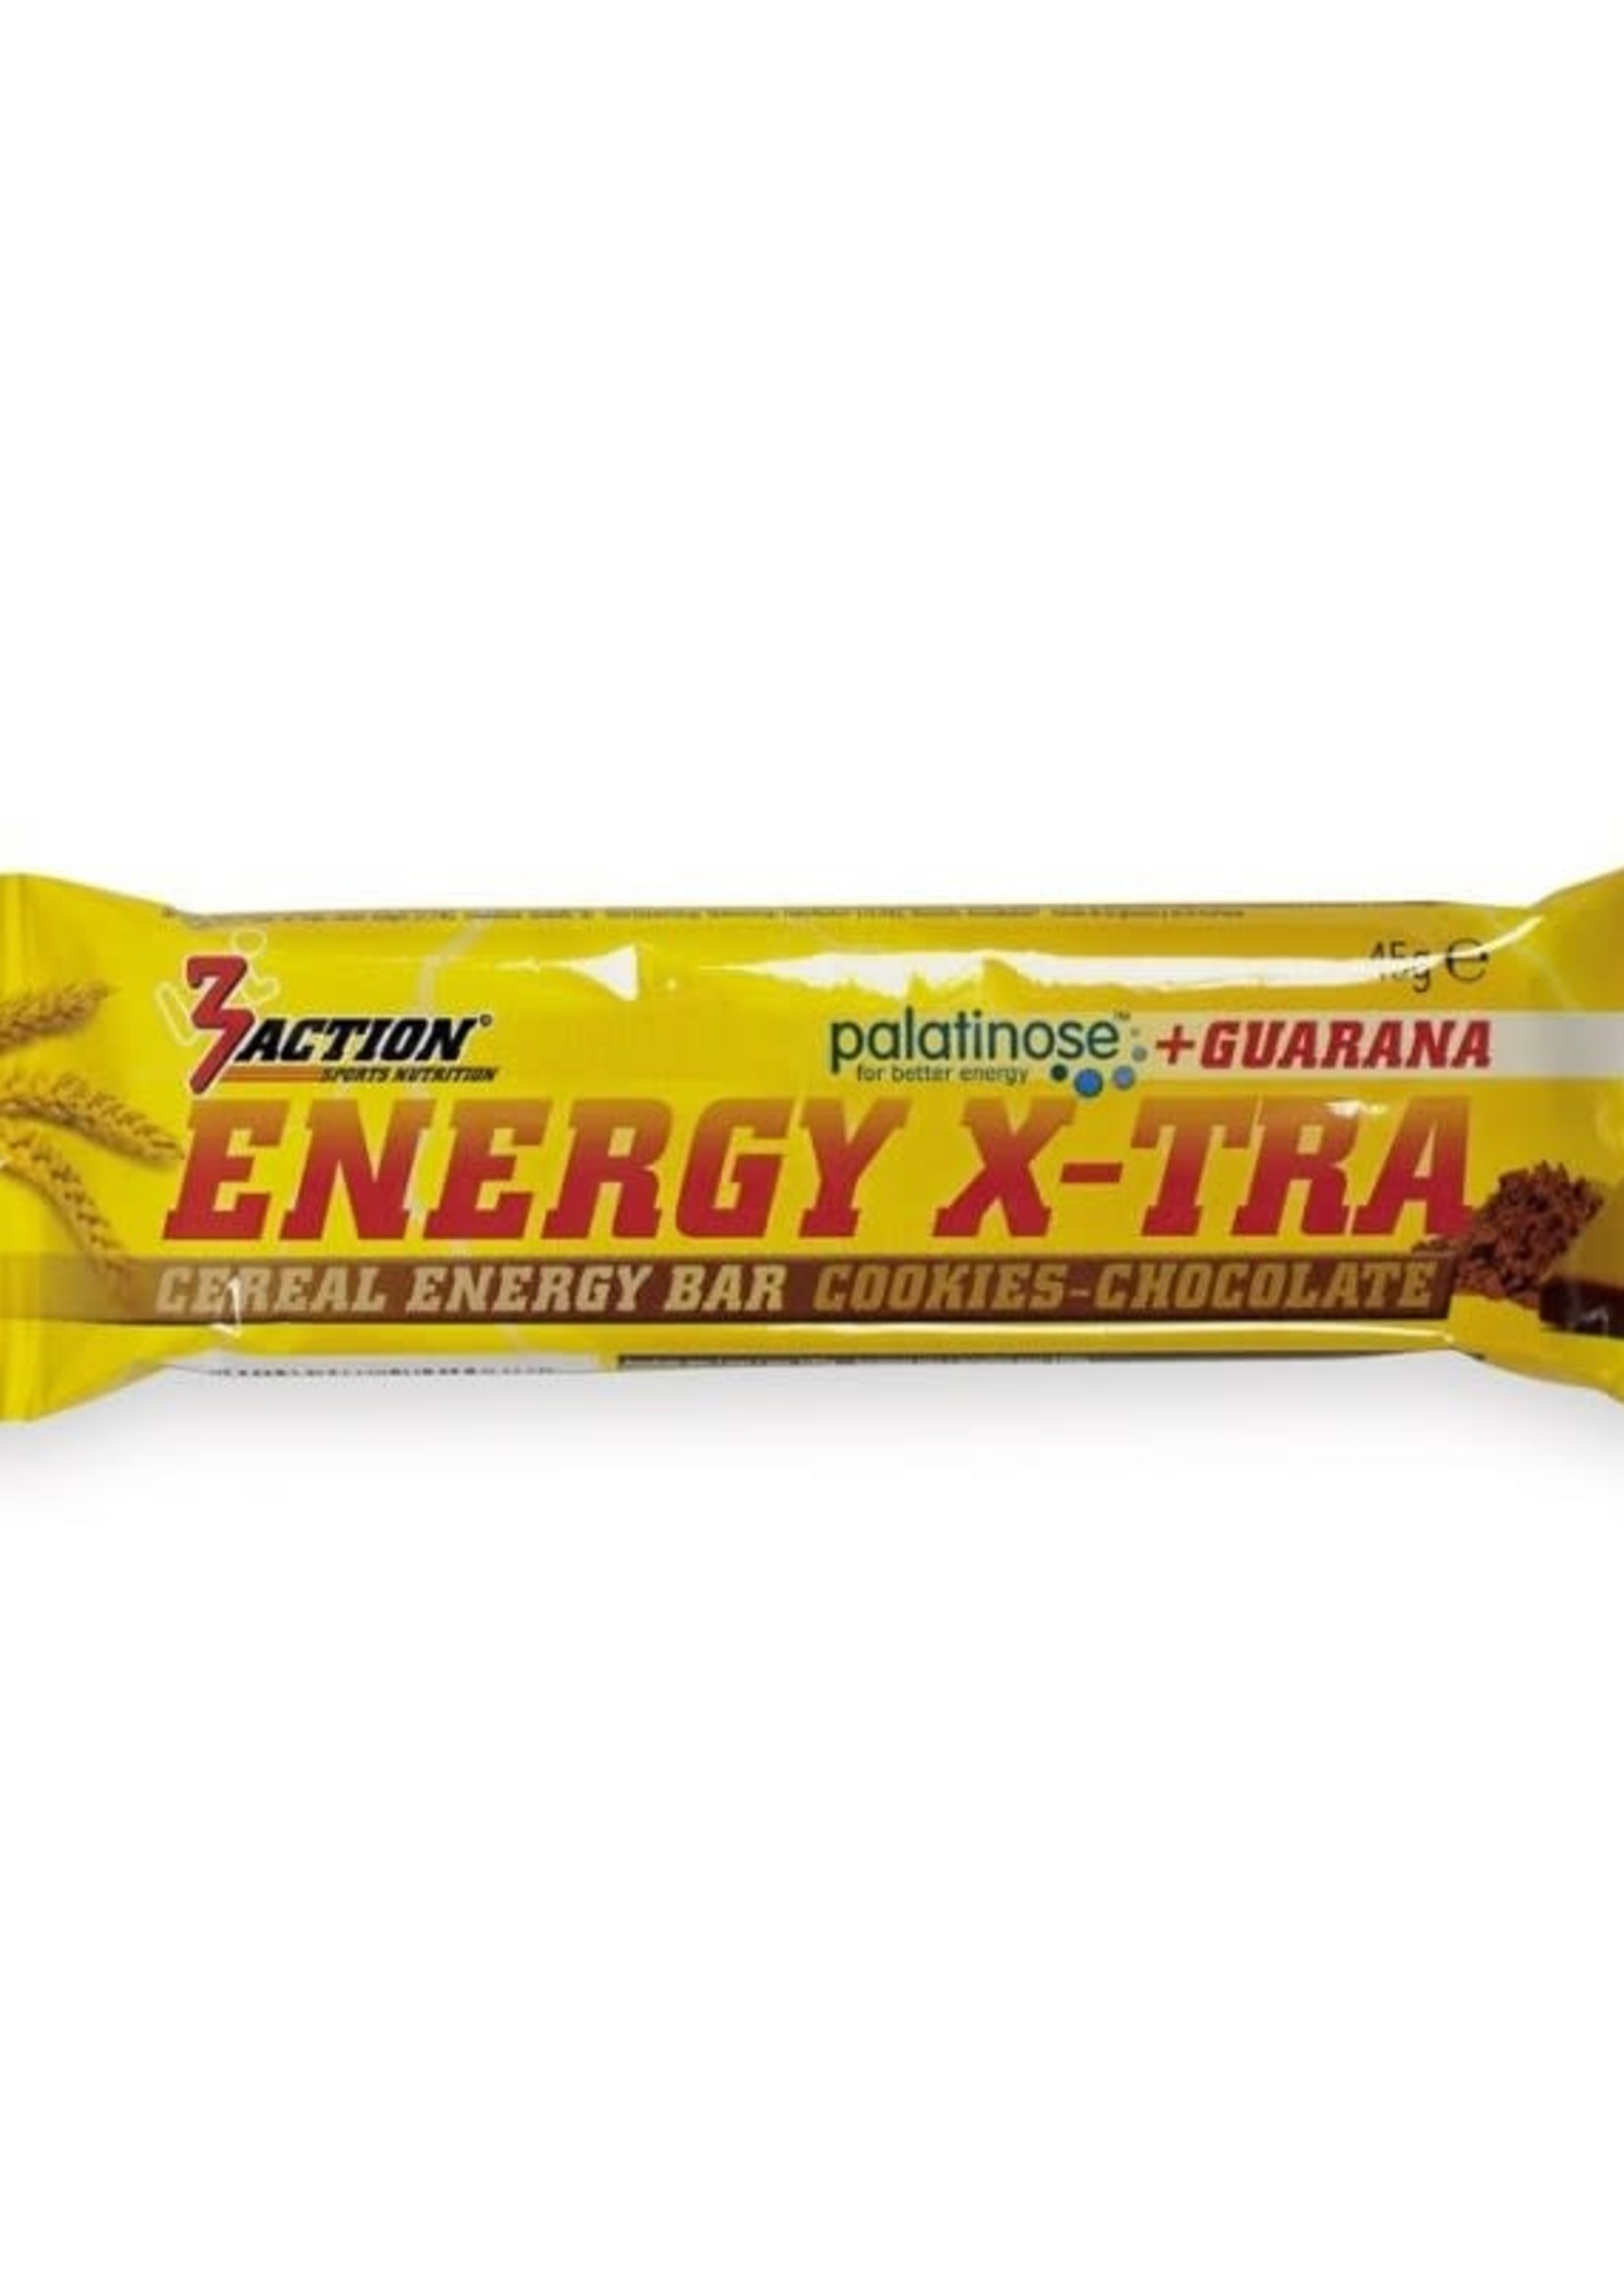 3Action 'Enery X-tra bar (cookies-chocolate)